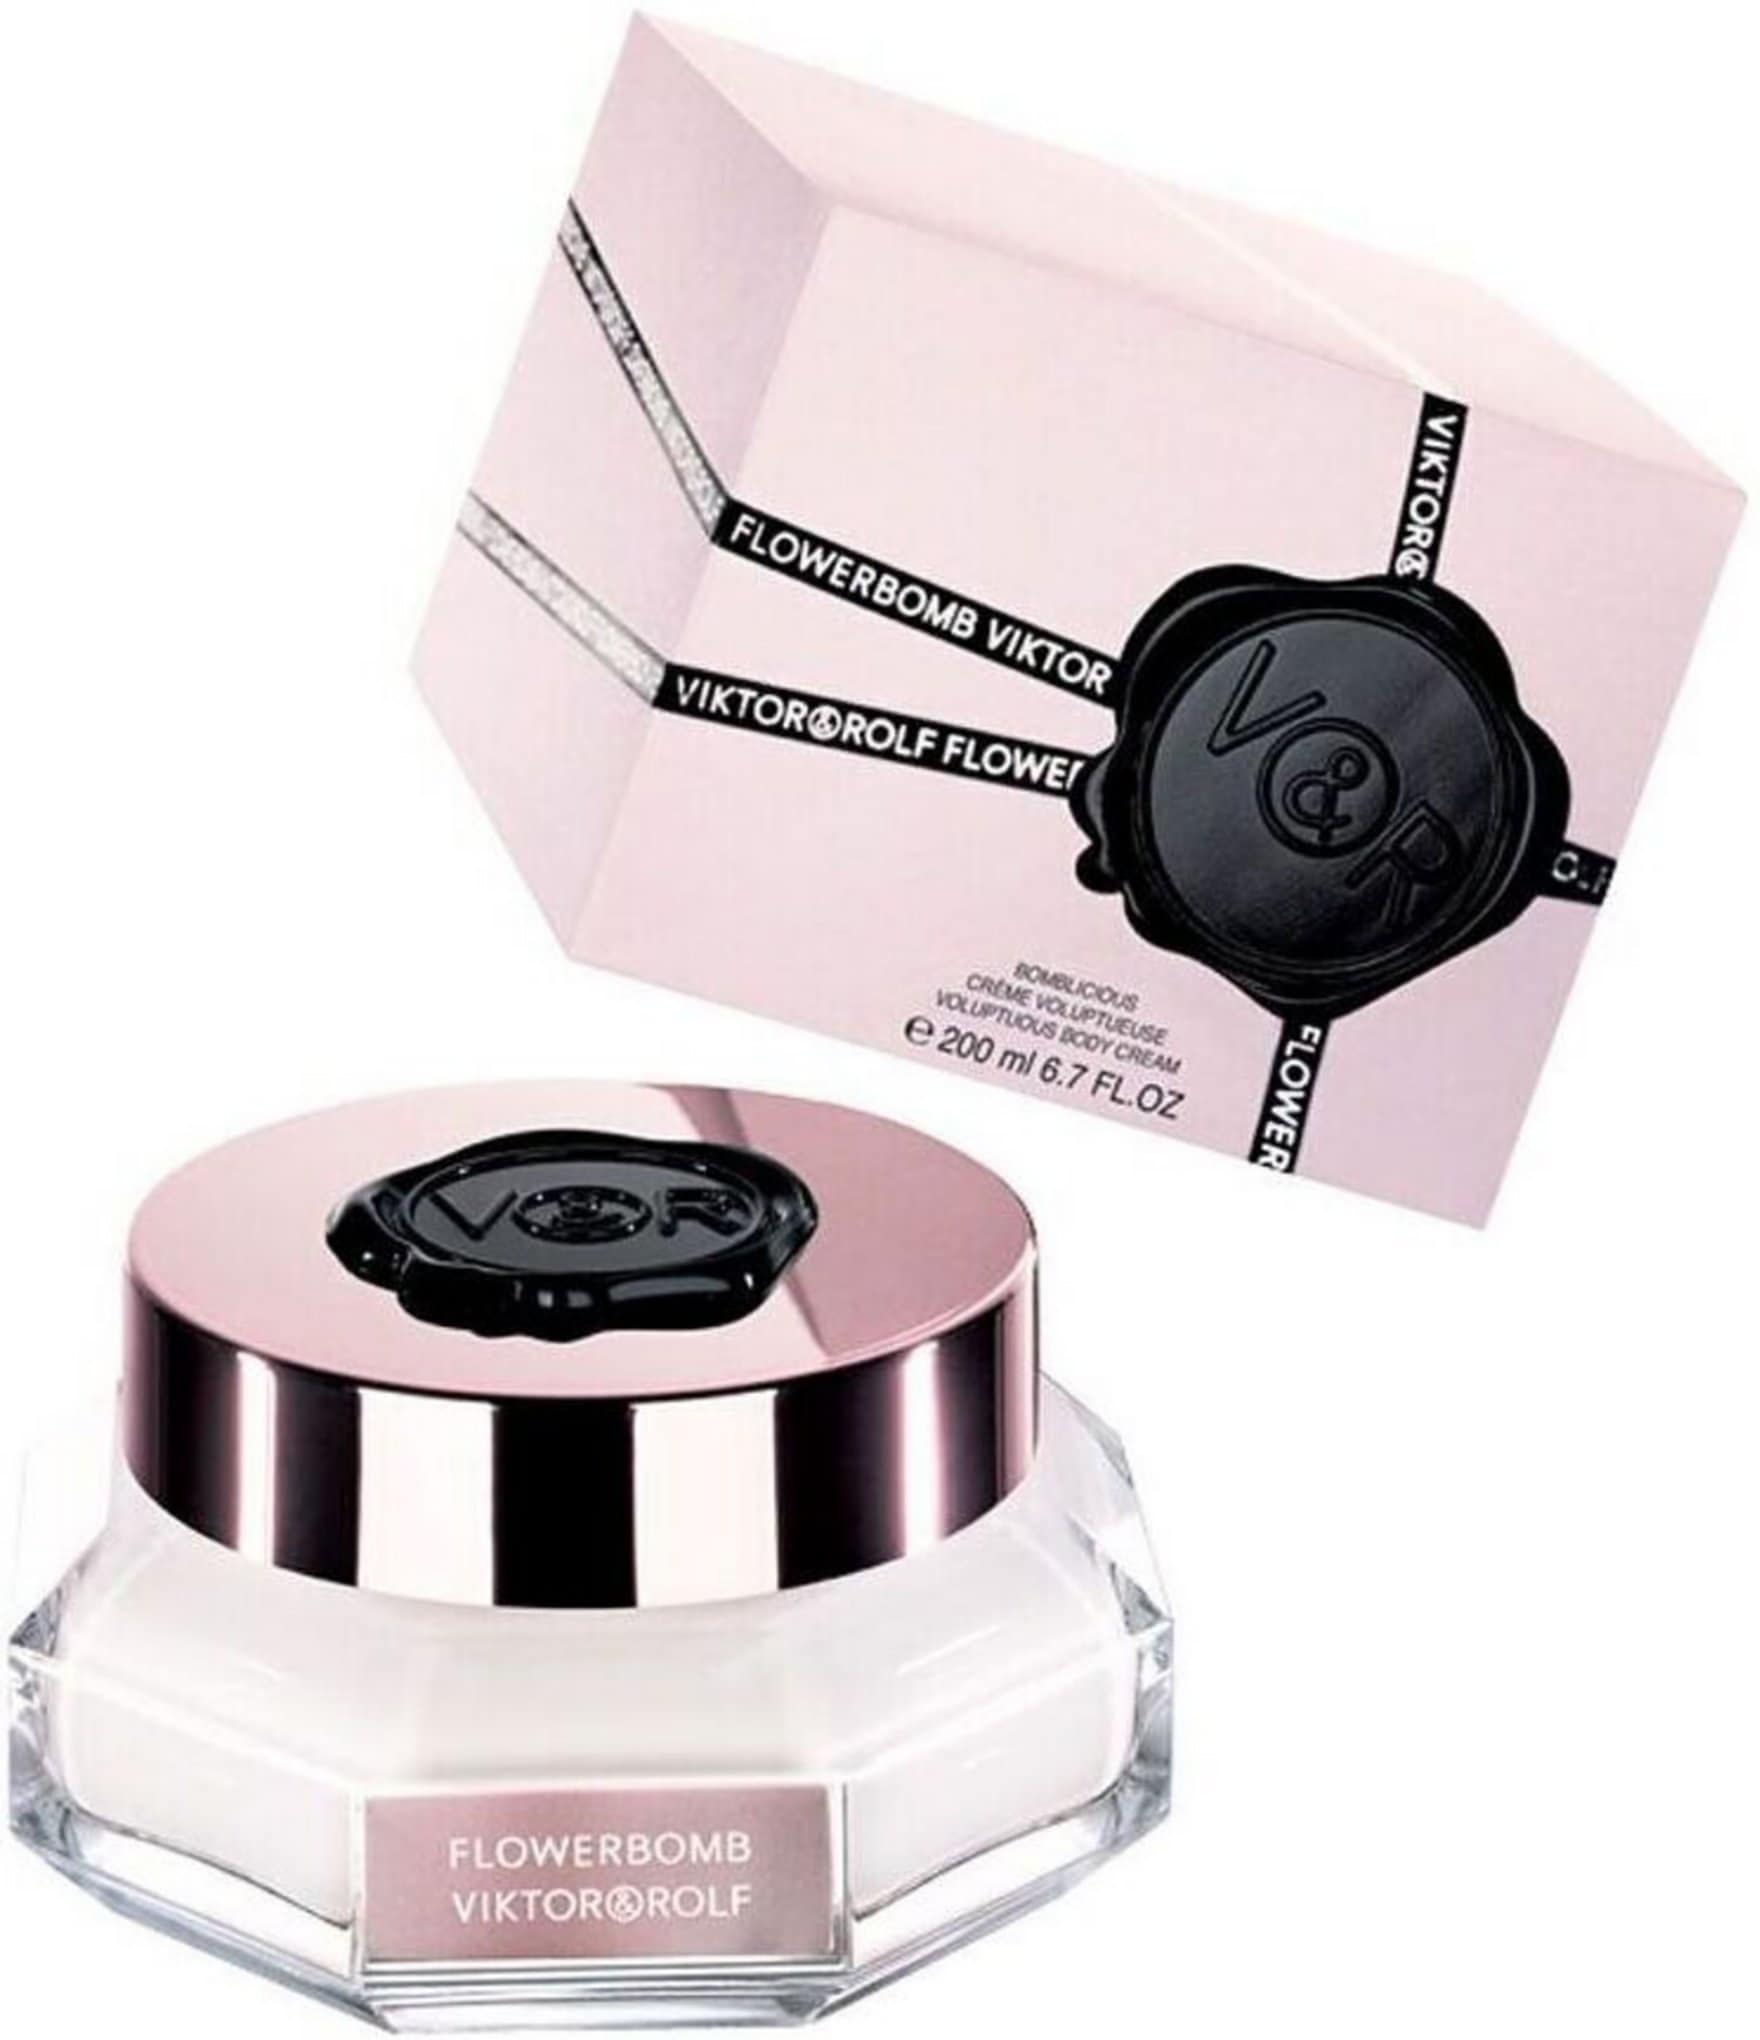 Viktor And Rolf Cosmetics Skincare Beauty Dillards